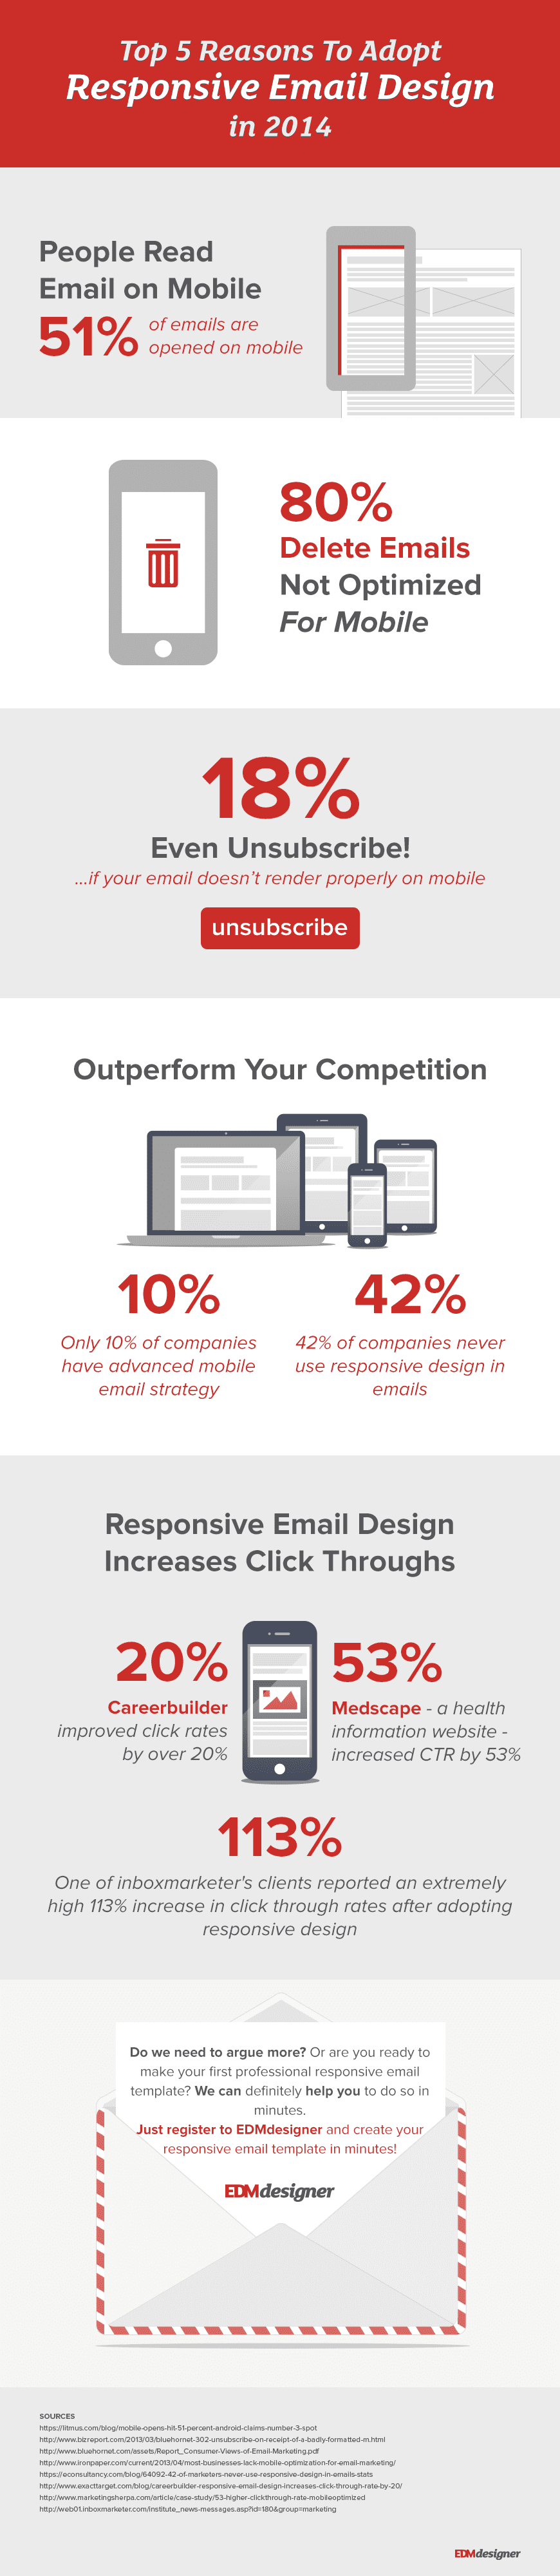 edmdesigner-infographics-top-5-reasons-to-adopt-responsive-email-design-in-2014